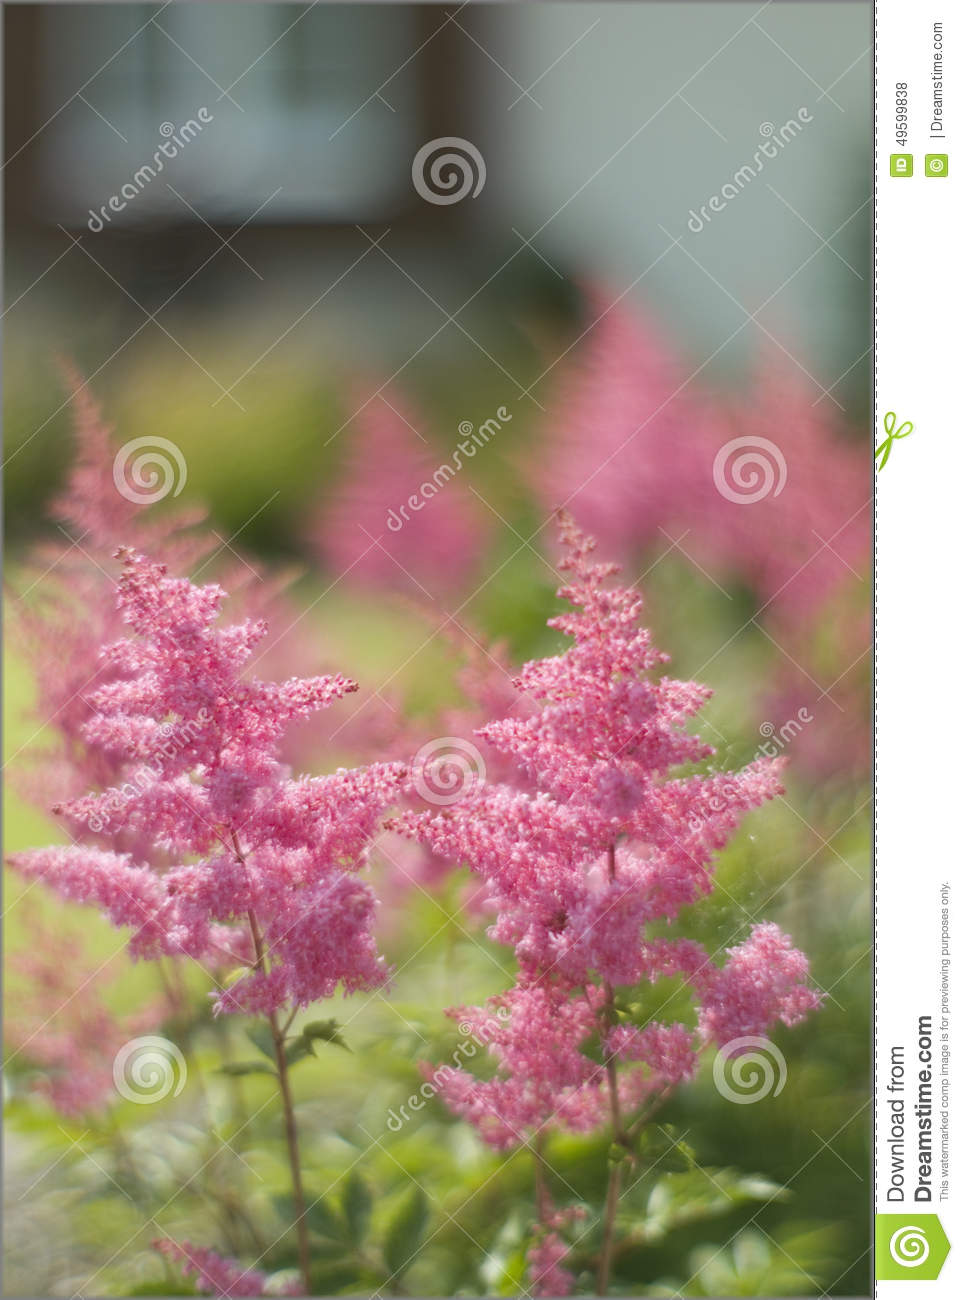 Plants for spring and summer - Flowers Plant In The Foreground With Garden Background